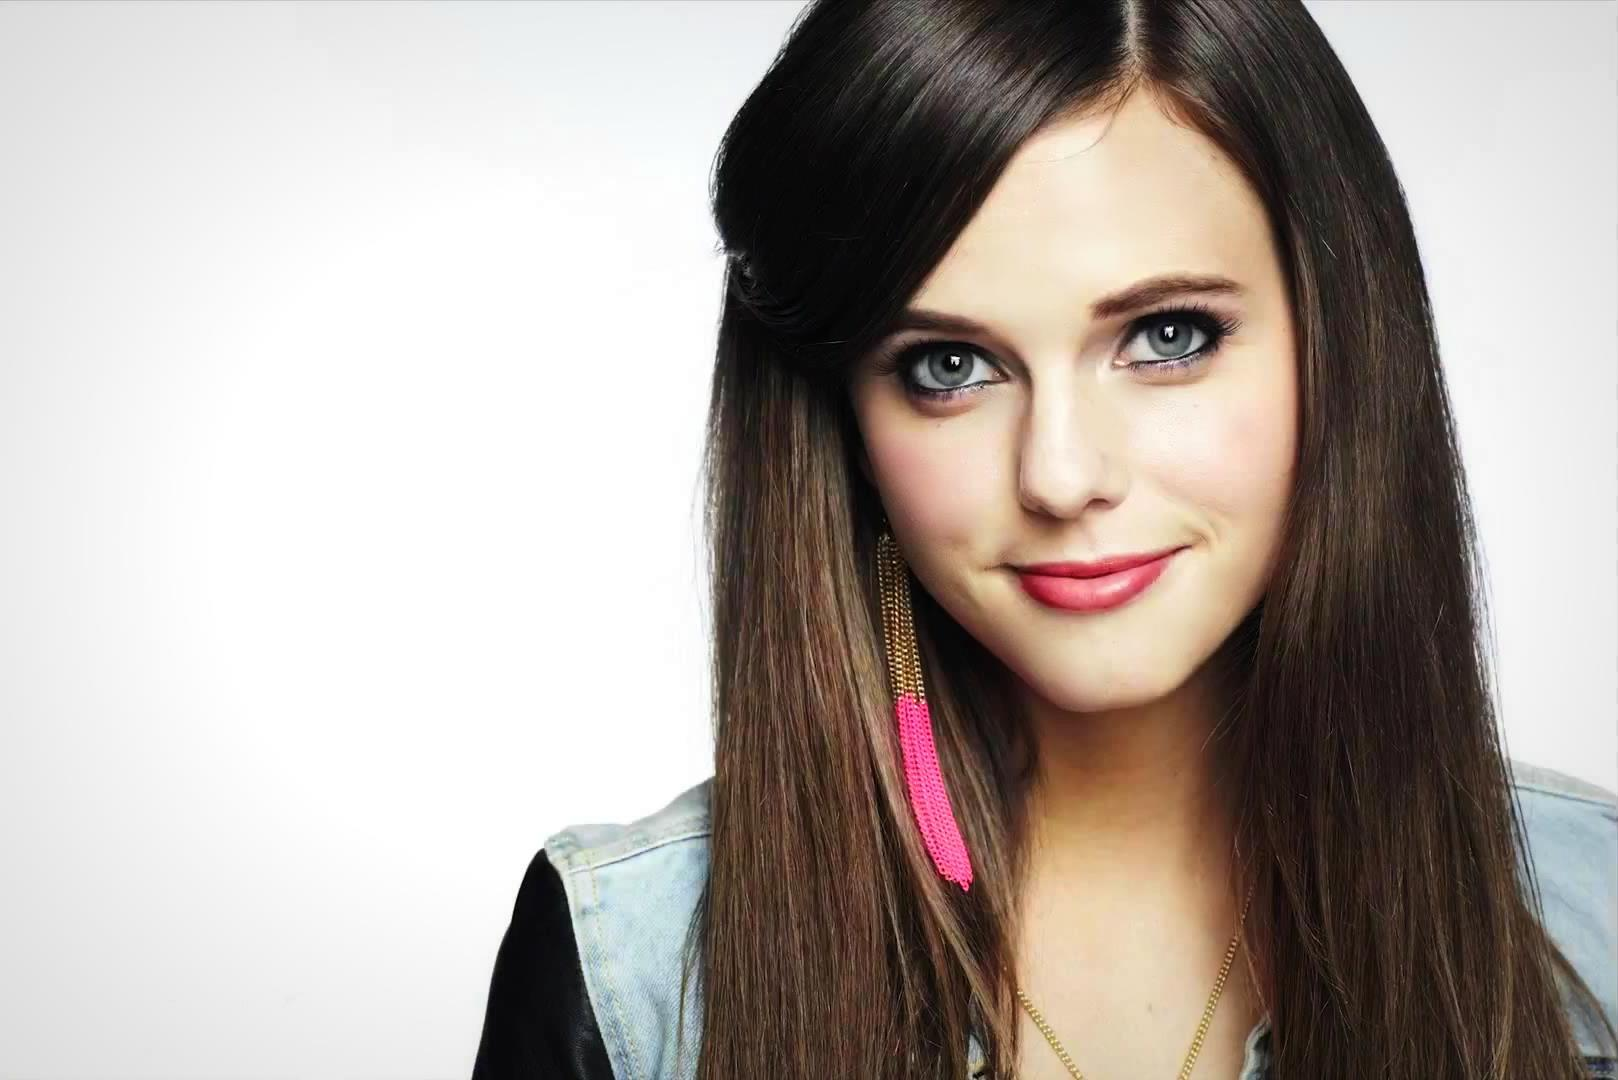 Photos Tiffany Alvord nudes (13 photos), Sexy, Cleavage, Instagram, underwear 2020